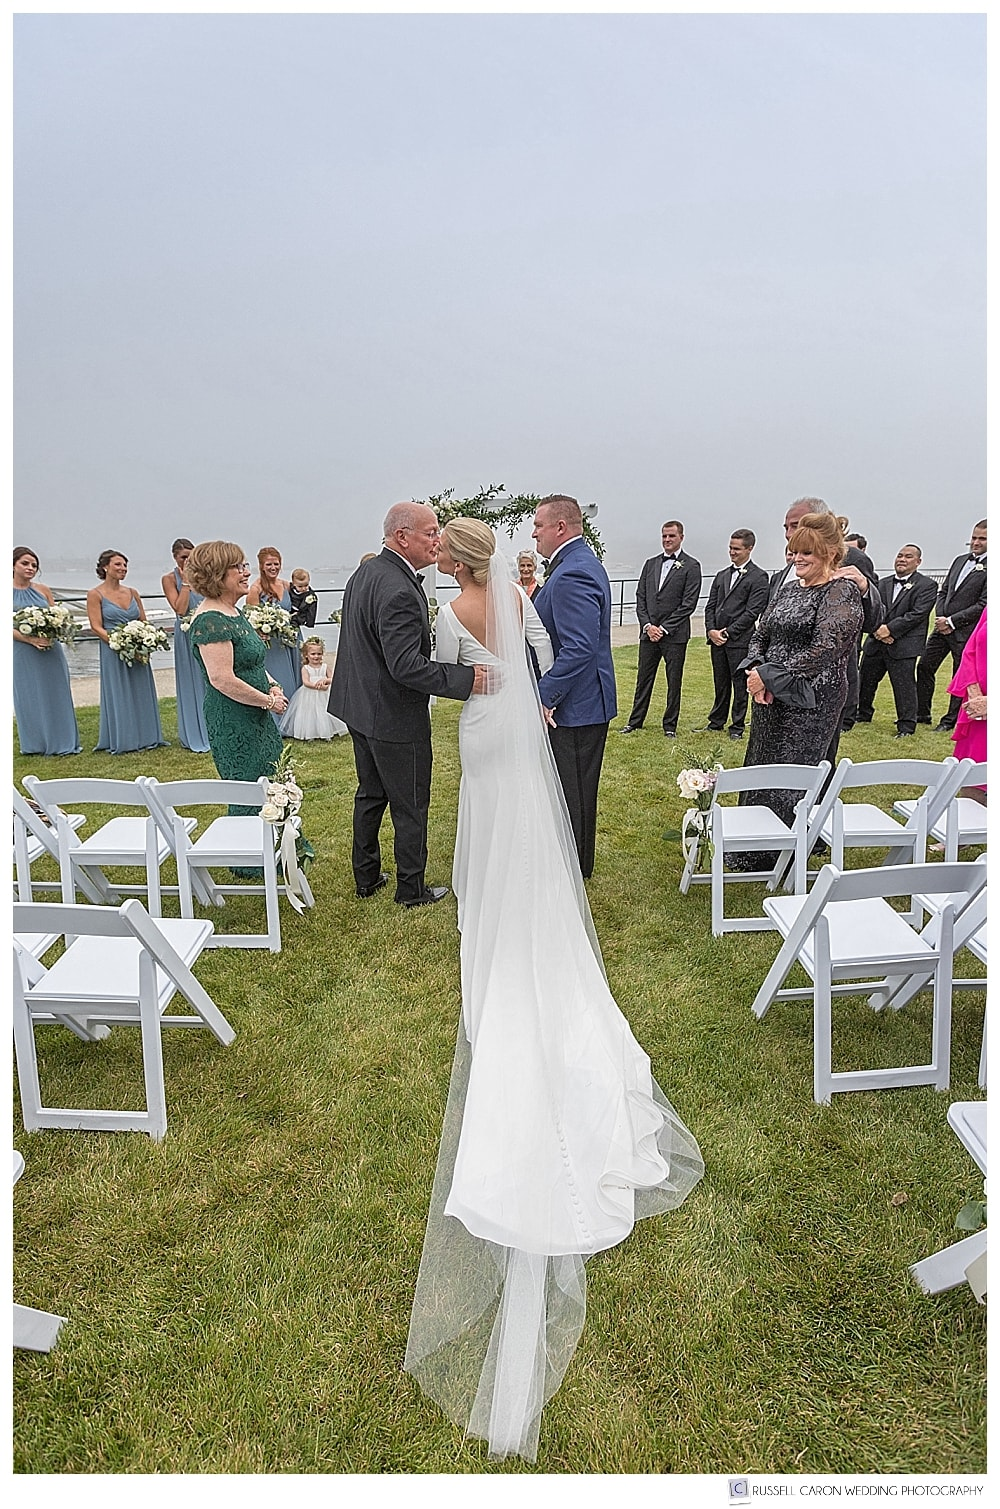 bride and her father reach the groom during an outdoor ceremony at the Newagen Seaside Inn, Southport Island, Maine